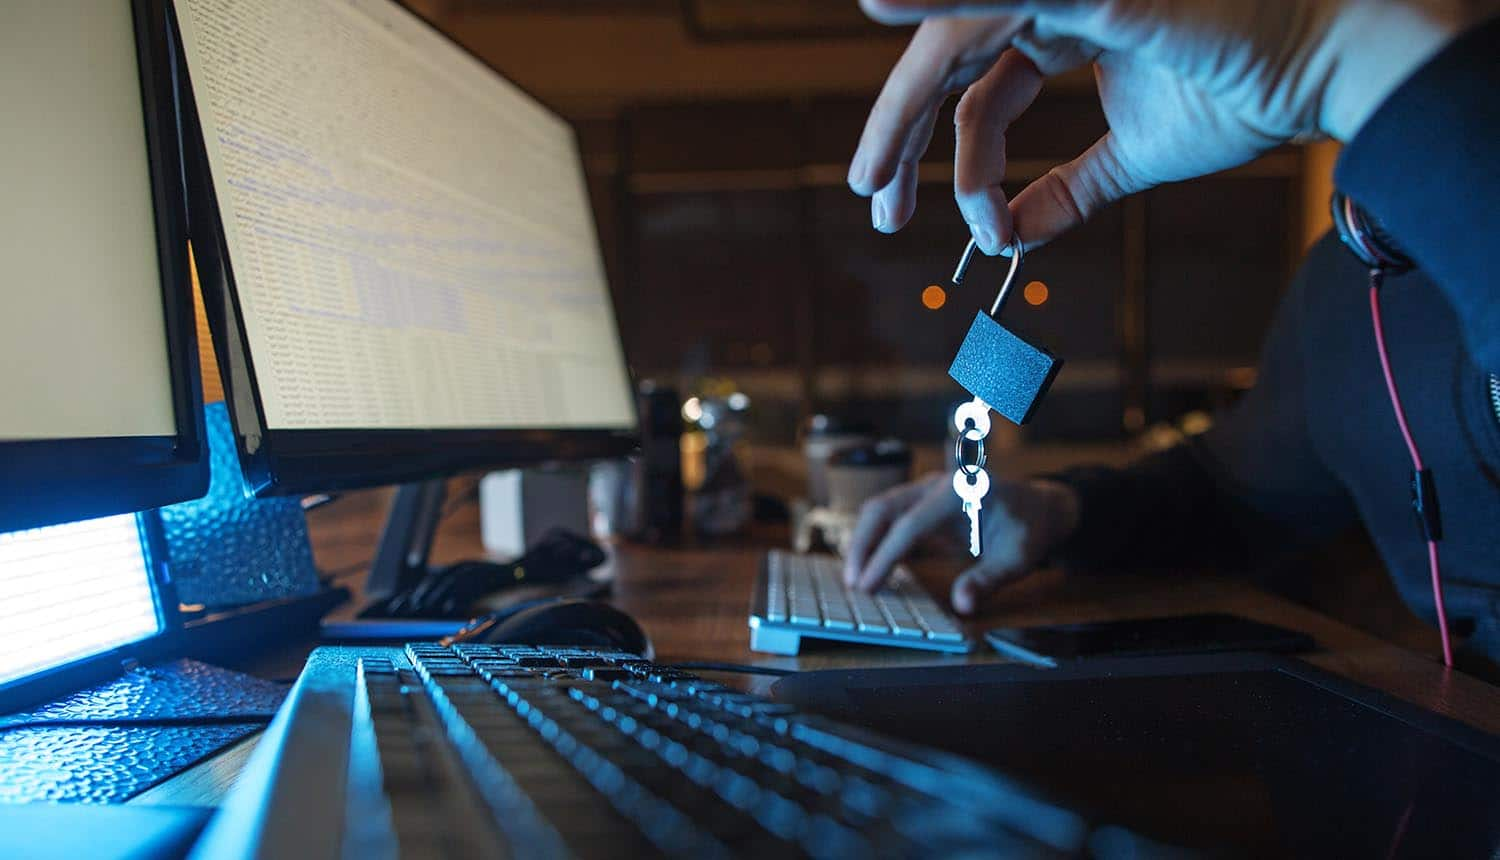 Close up hand of cybercriminal downloading data from Marriot data breach while holding an opened lock and key